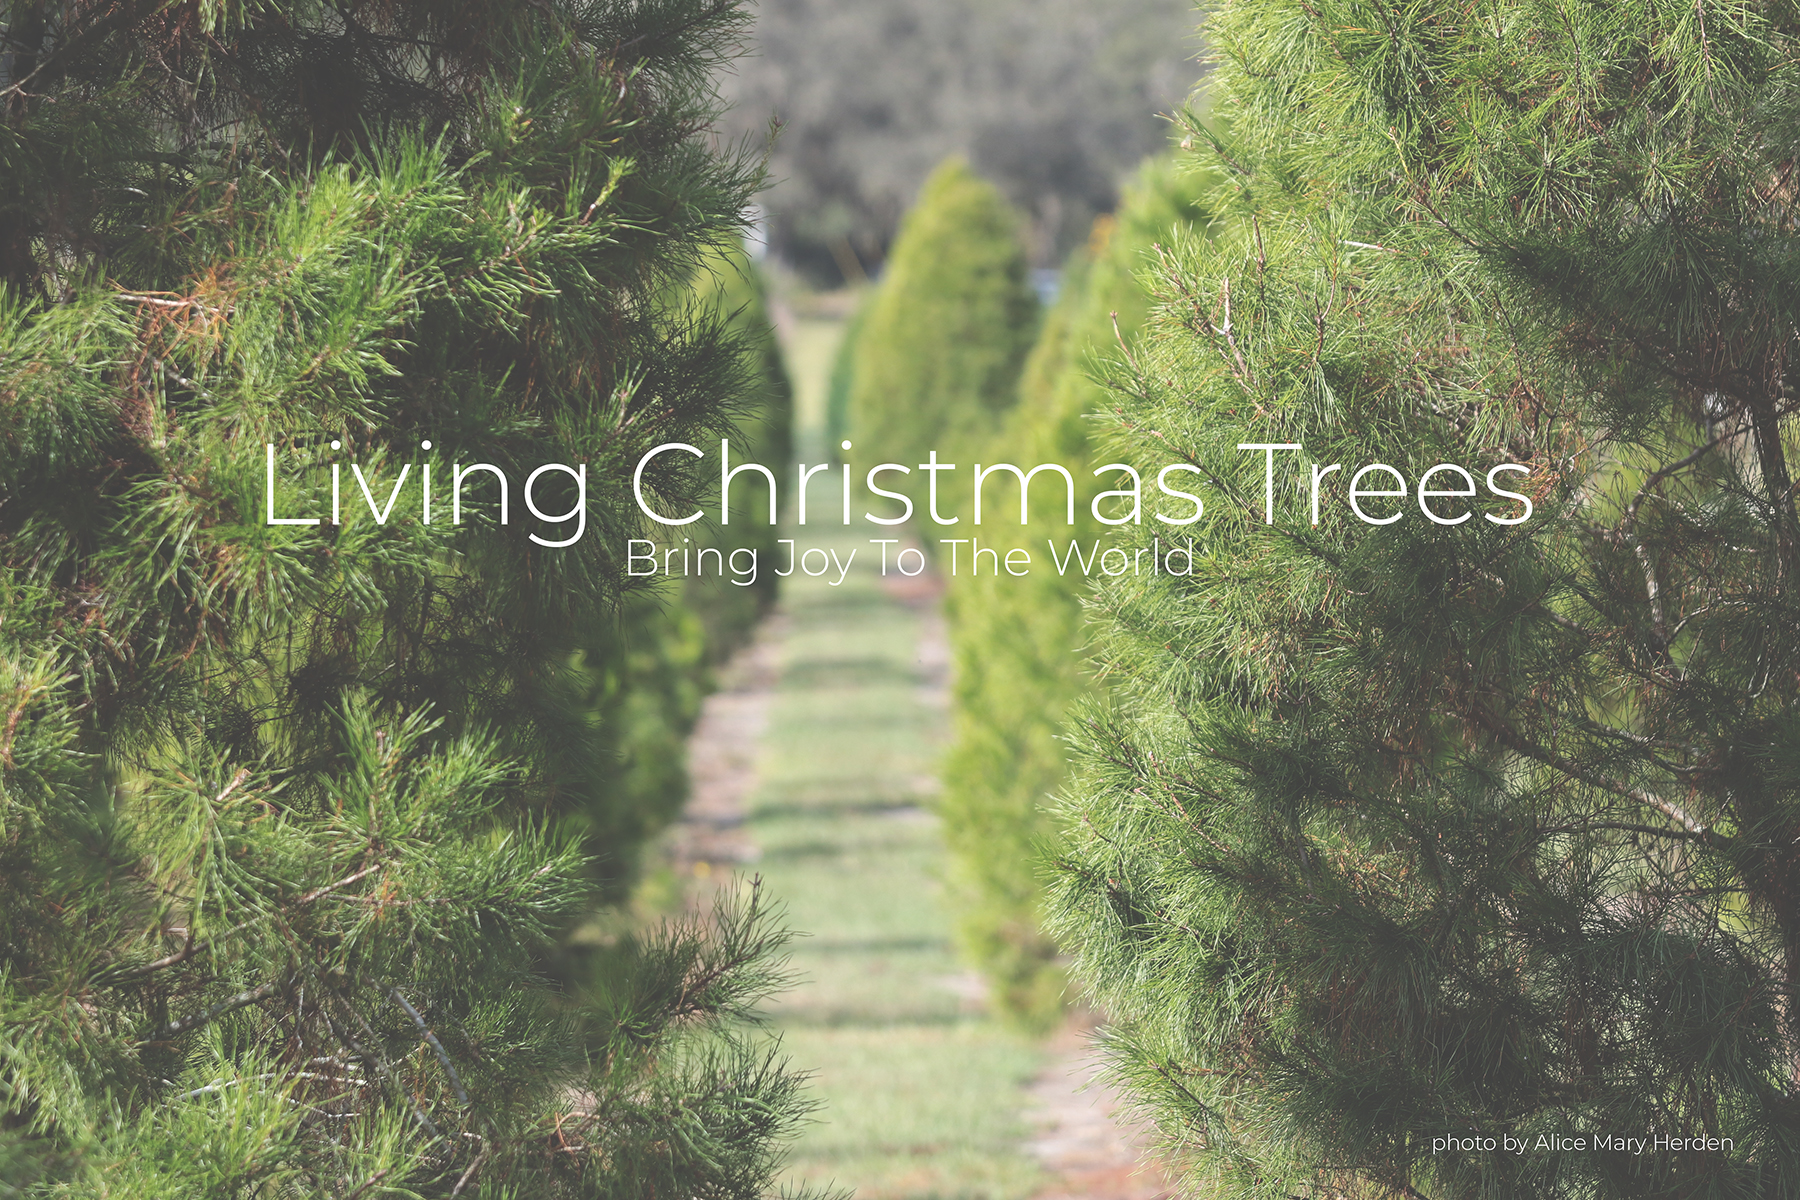 Living Christmas Trees Bring Joy to the World